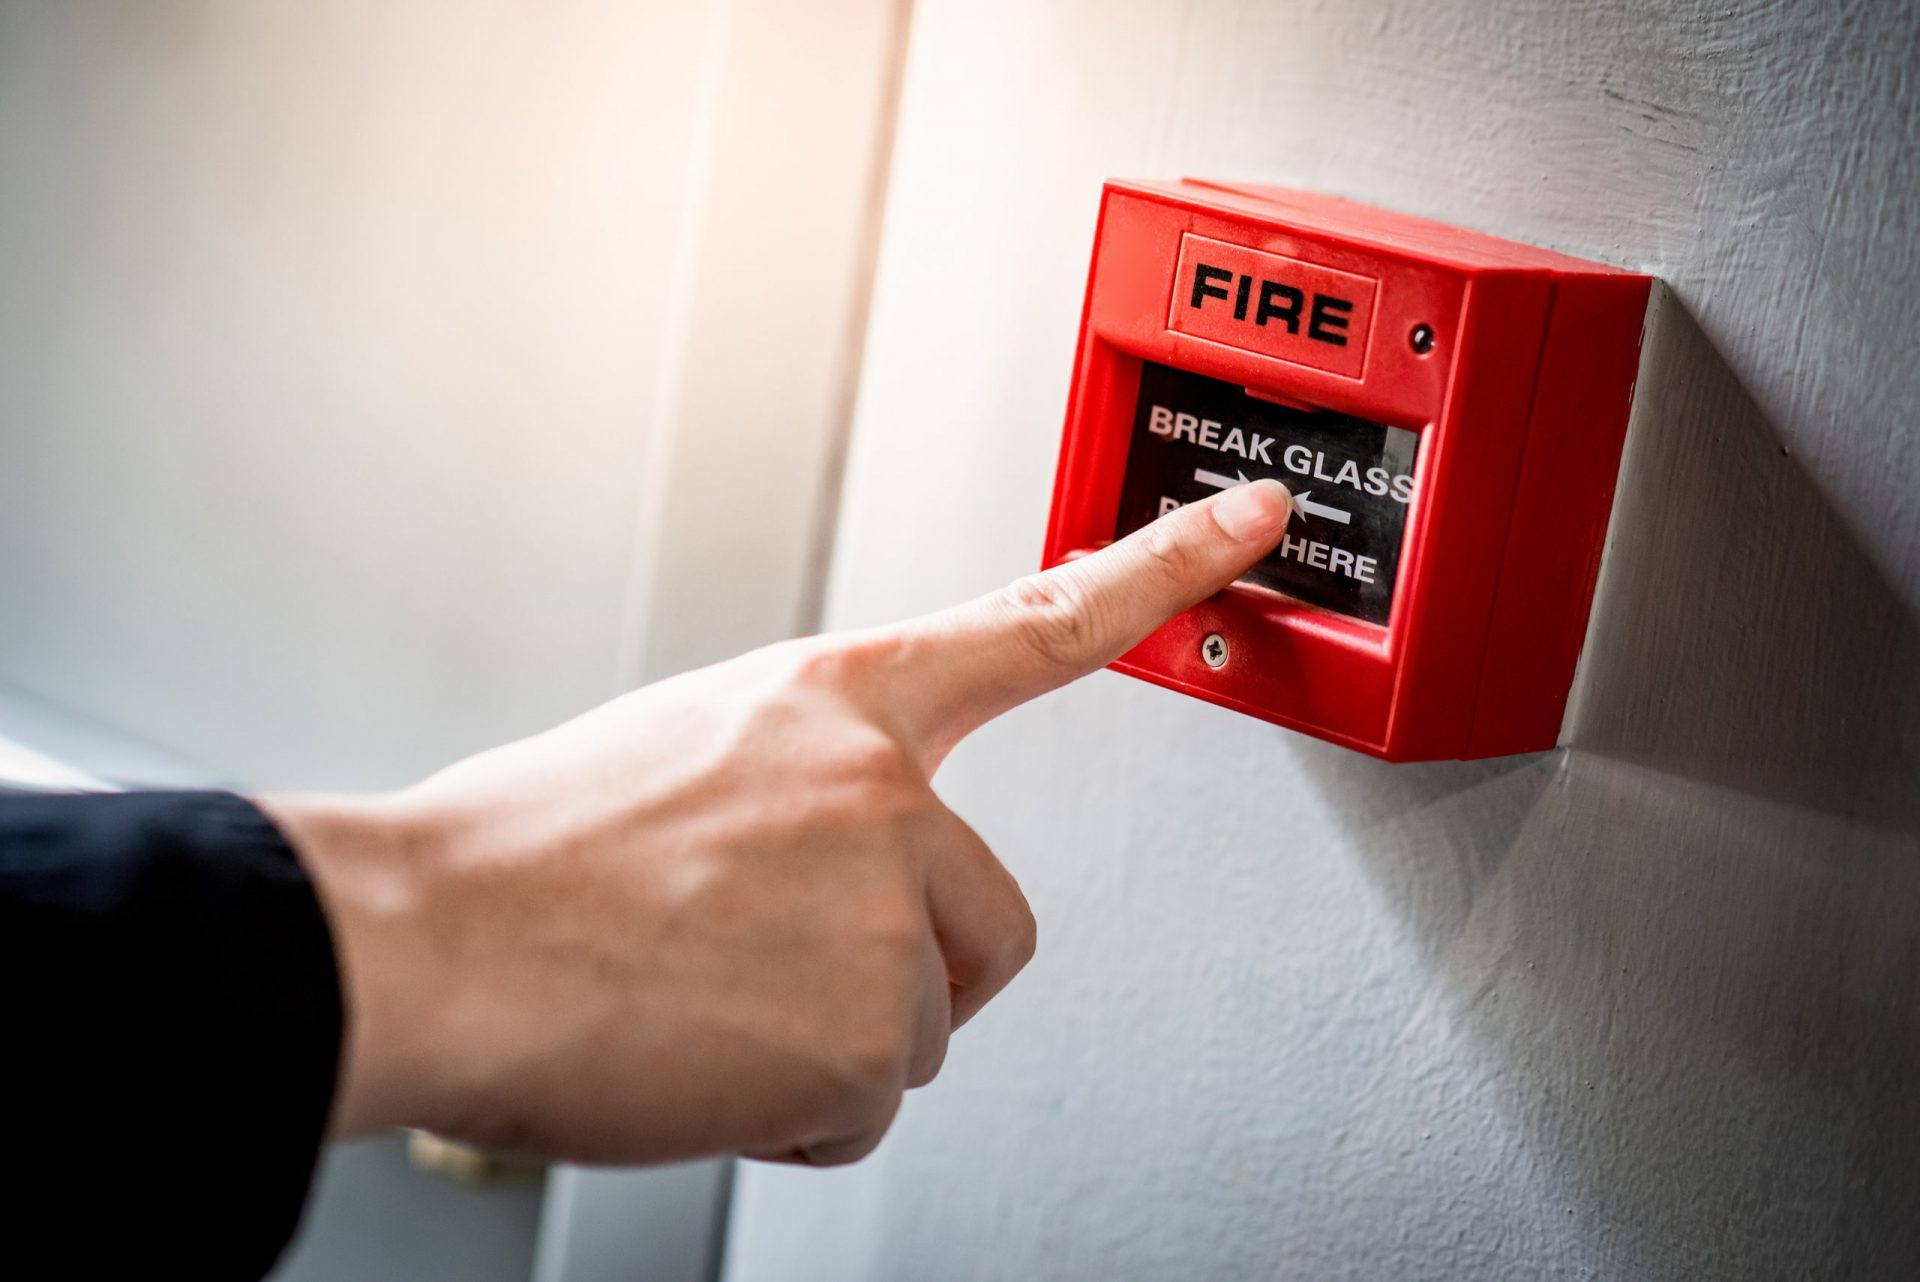 Fire Safety Tips for the Home and Workplace